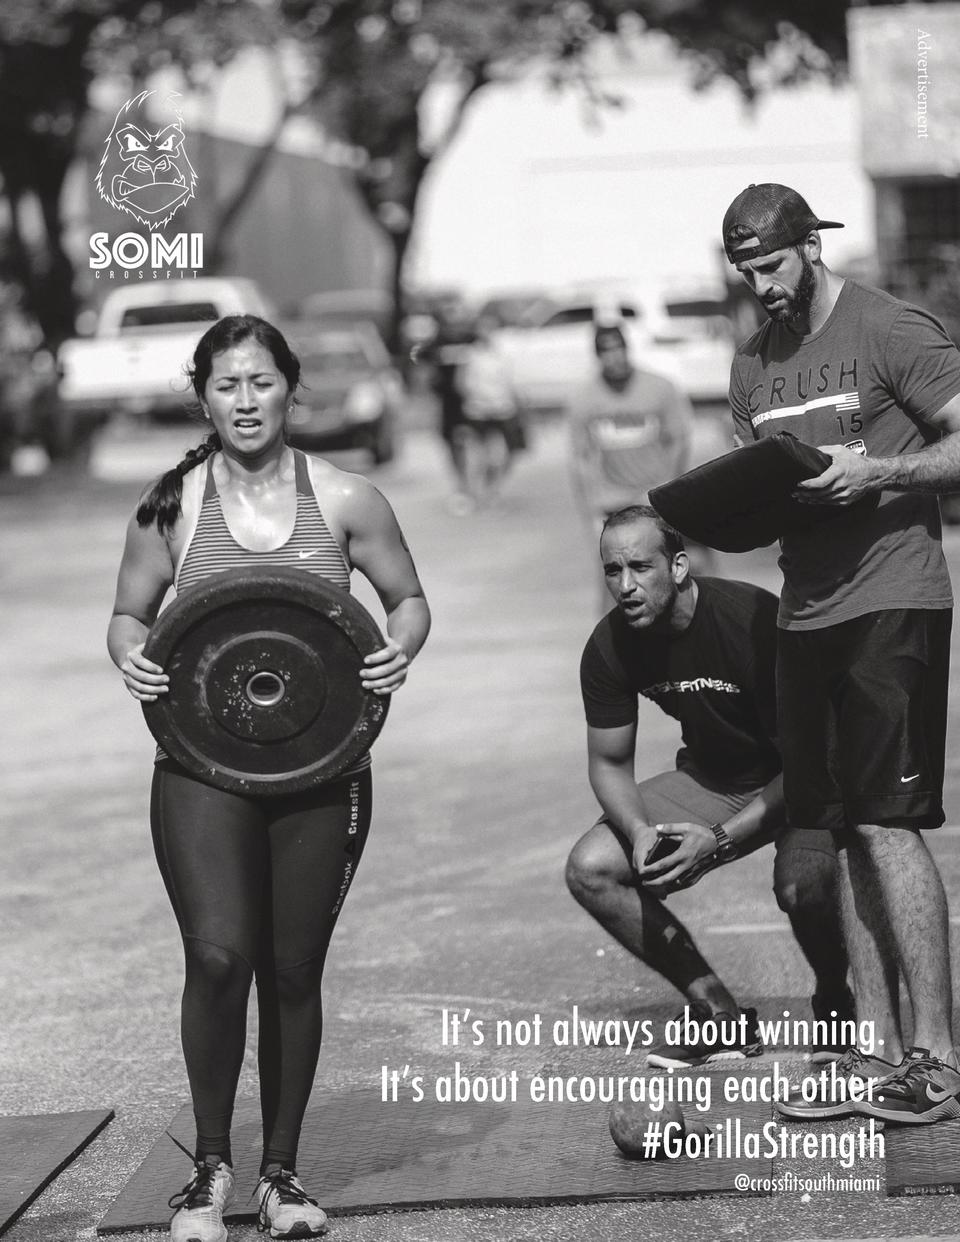 Advertisement  It   s not always about winning. It   s about encouraging each other.  GorillaStrength  crossfitsouthmiami ...